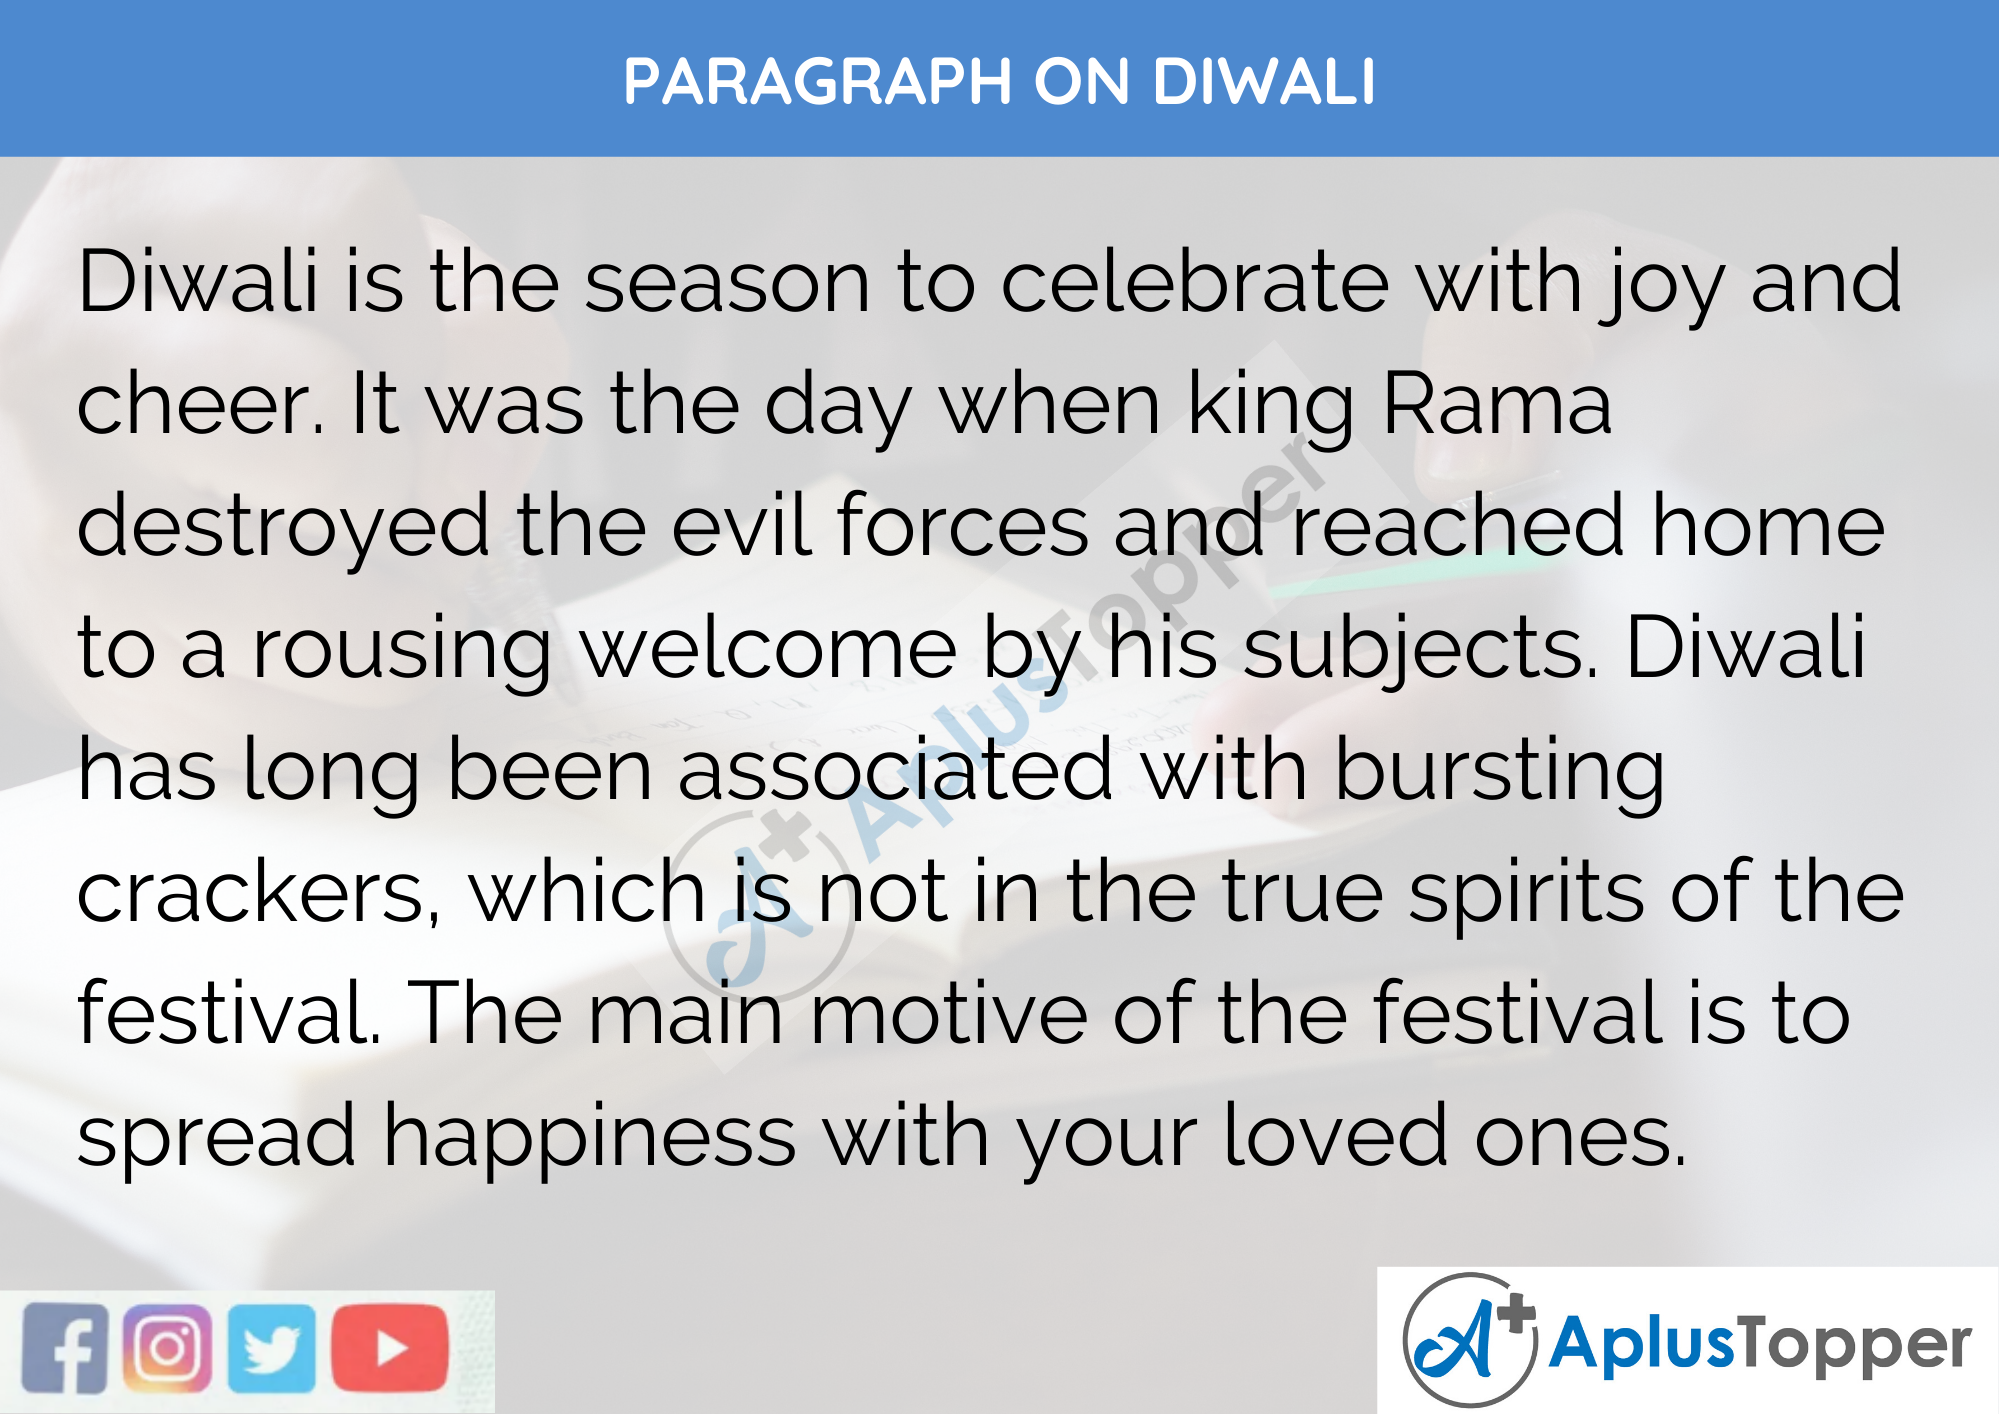 Paragraph on Diwali - 250 to 300 Words for Classes 9, 10, 11, 12 and Competitive Exams Students